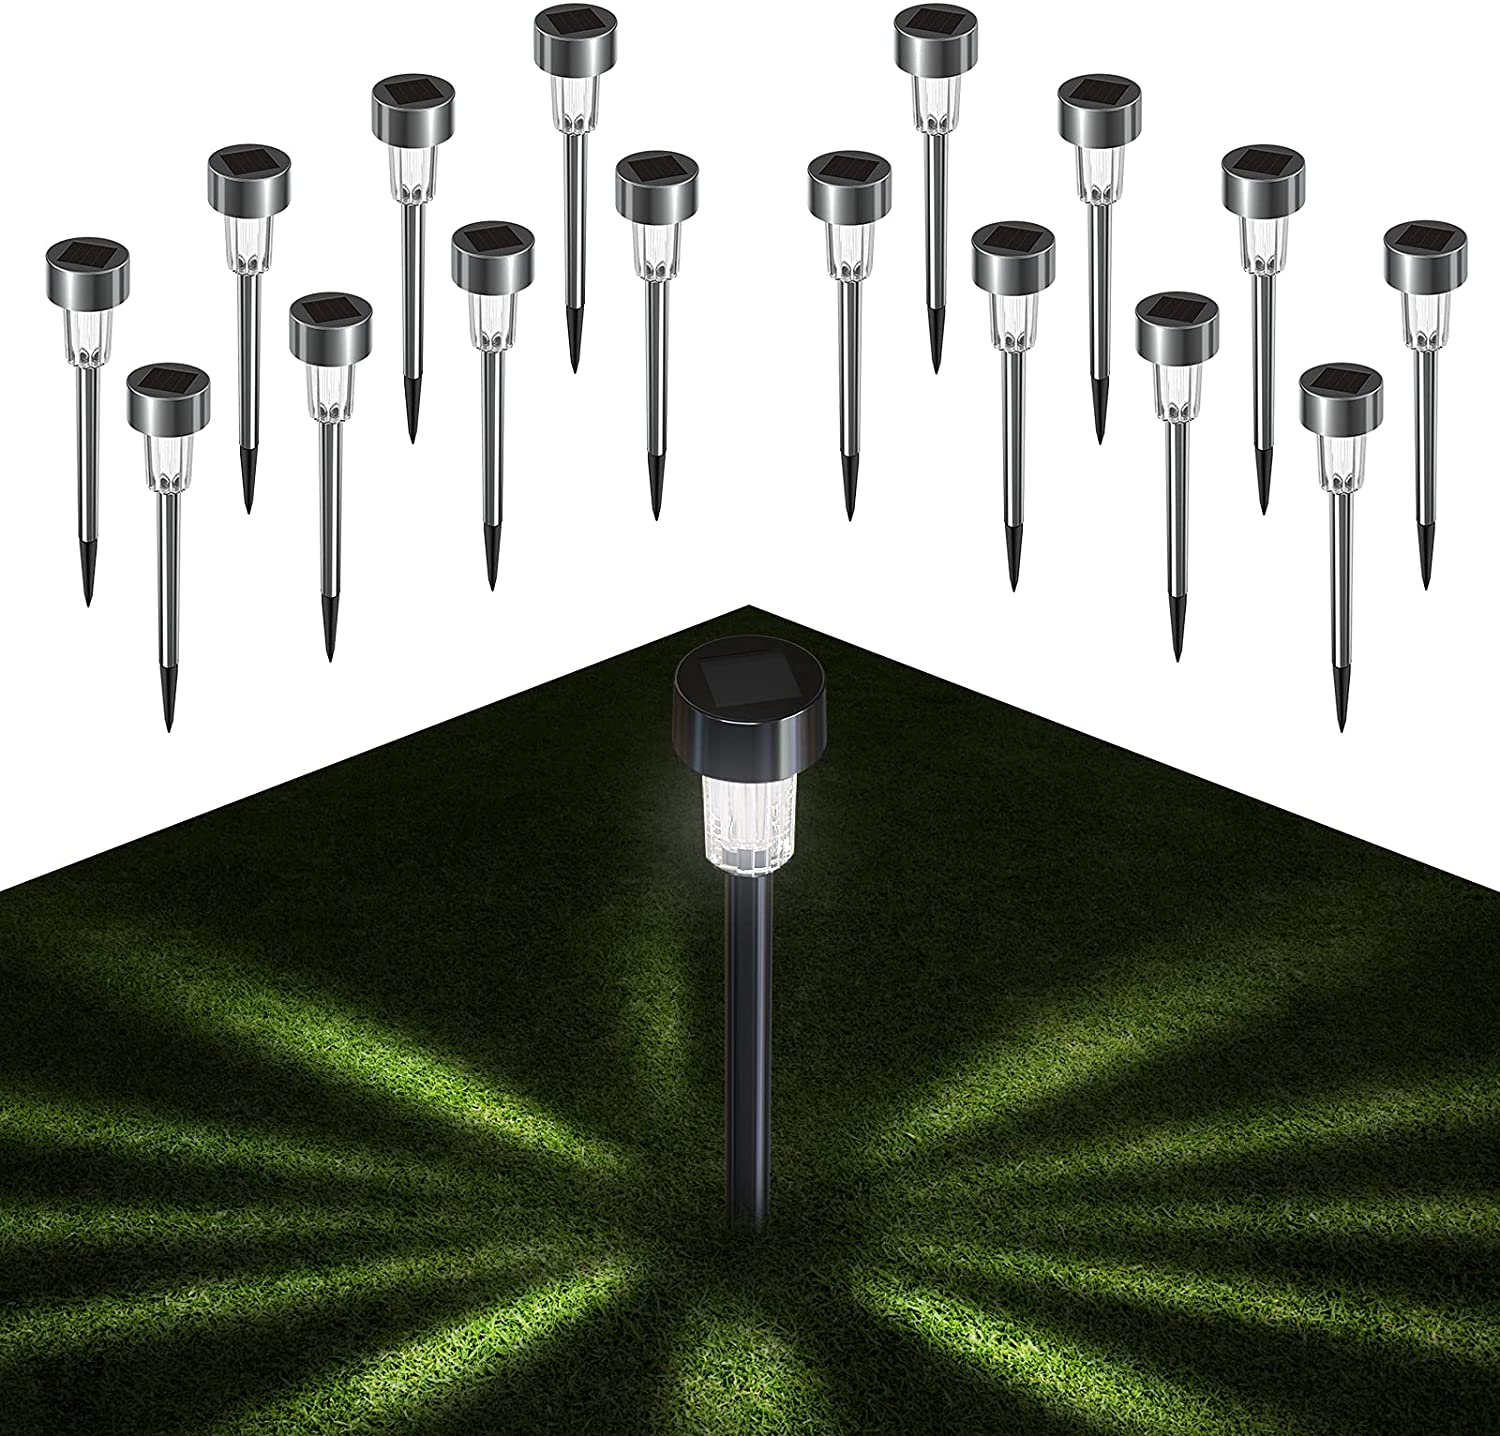 Quntis Solar Pathway Lights Outdoor 16Pack Waterproof Solar Powered Garden Lights - Stainless Steel LED Solar Path Lights Landscape Lighting for Yard Lawn Porch Walkway Driveway, 10 Lumen Cool White